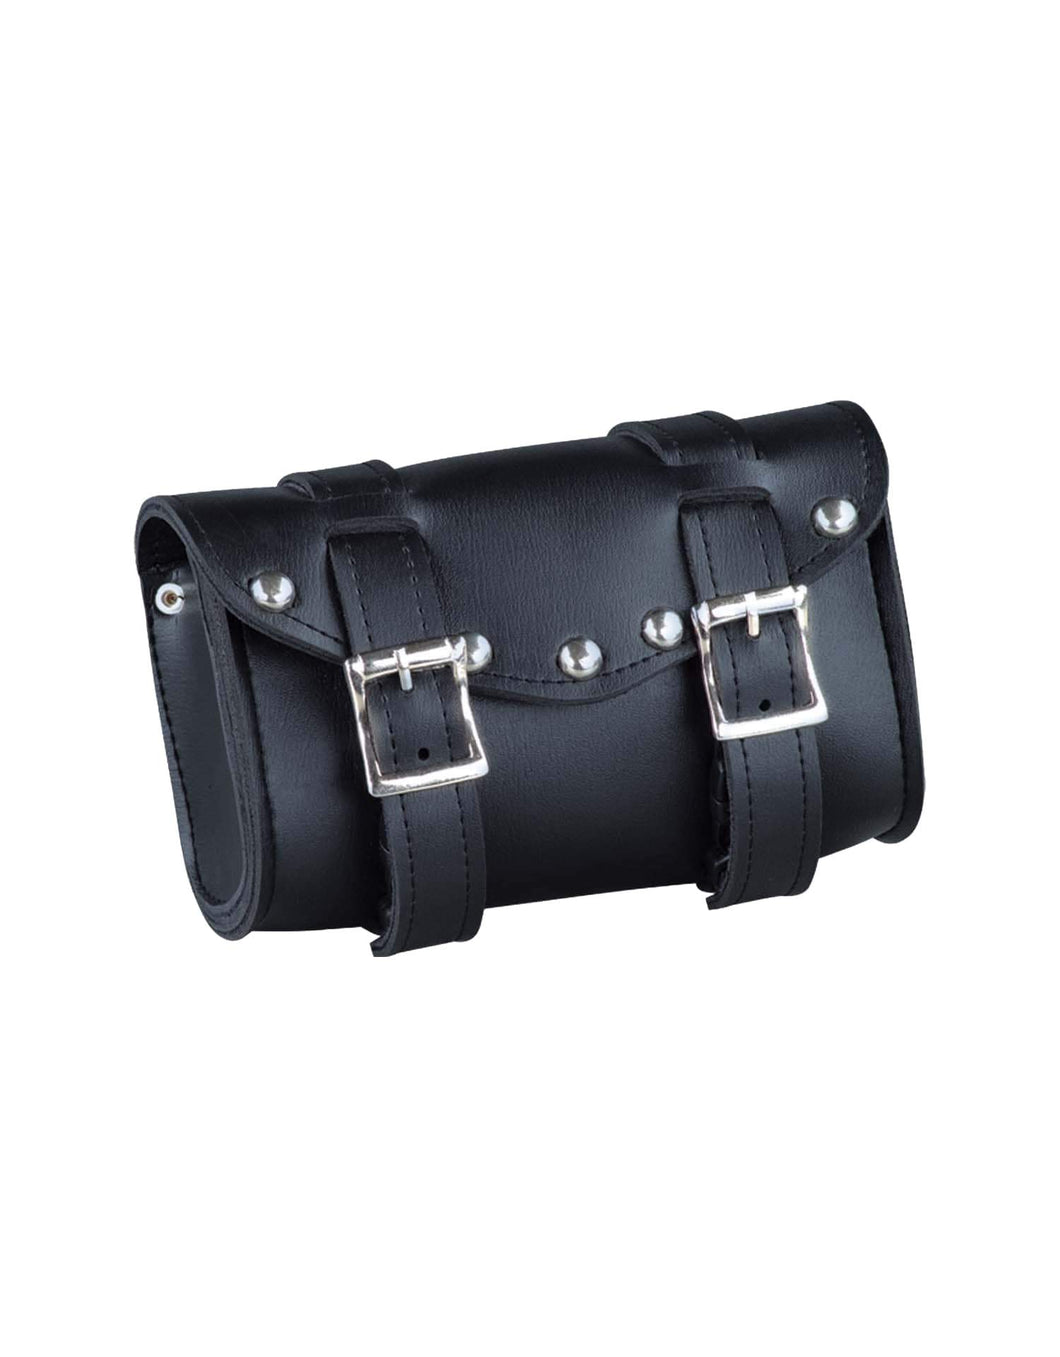 UNIK PVC Tool Bag - Ghost Rider Leather